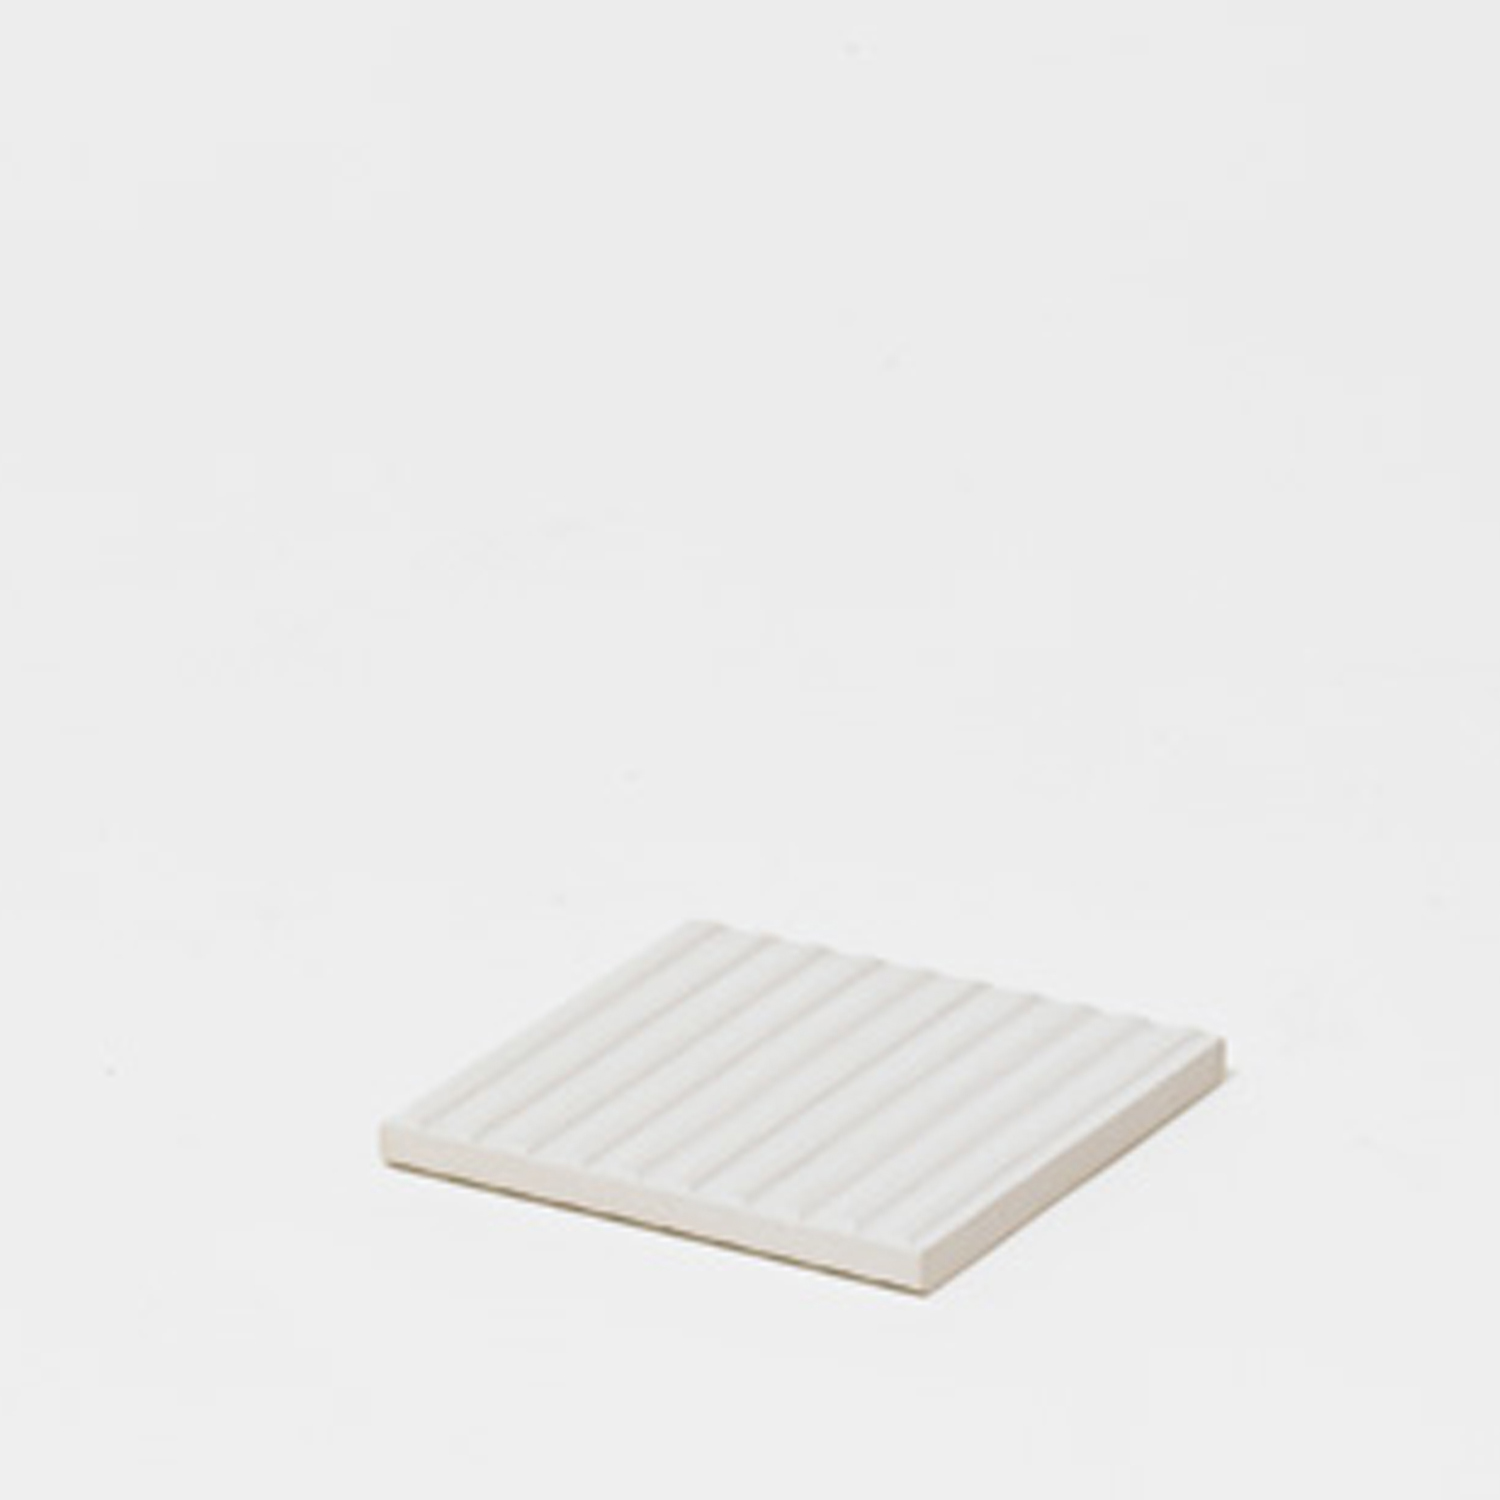 DRYING BOARD White